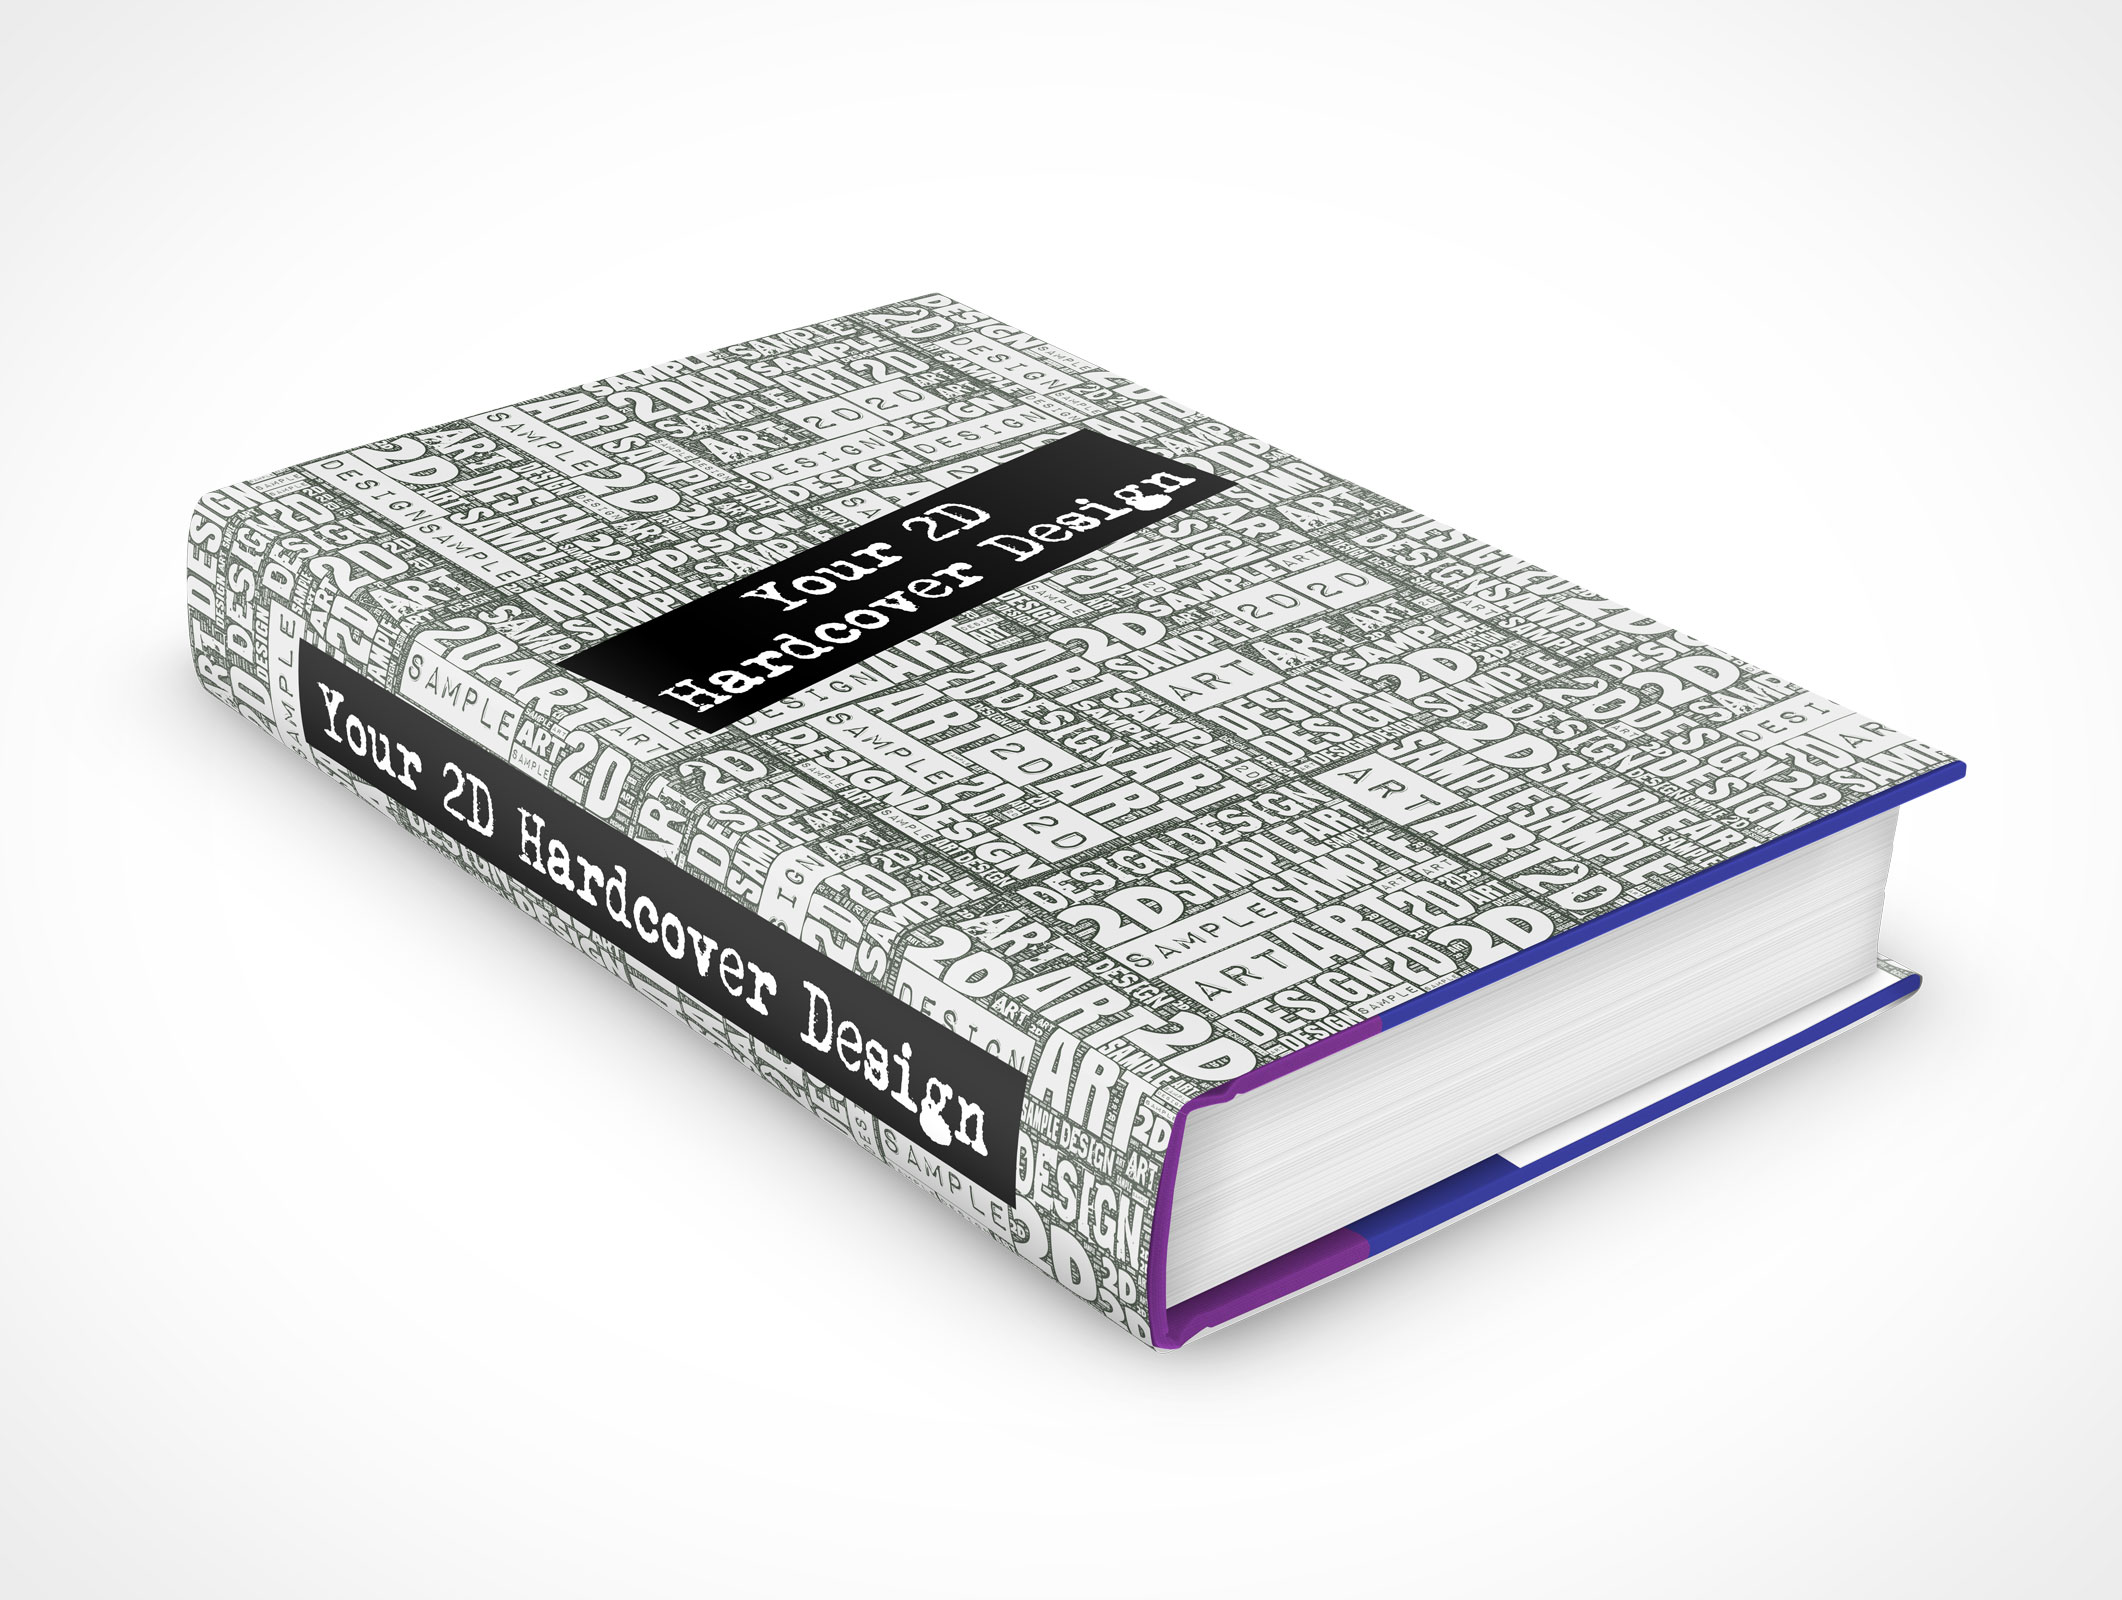 Hardcover Book With Pictures : Hardcover market your psd mockups for